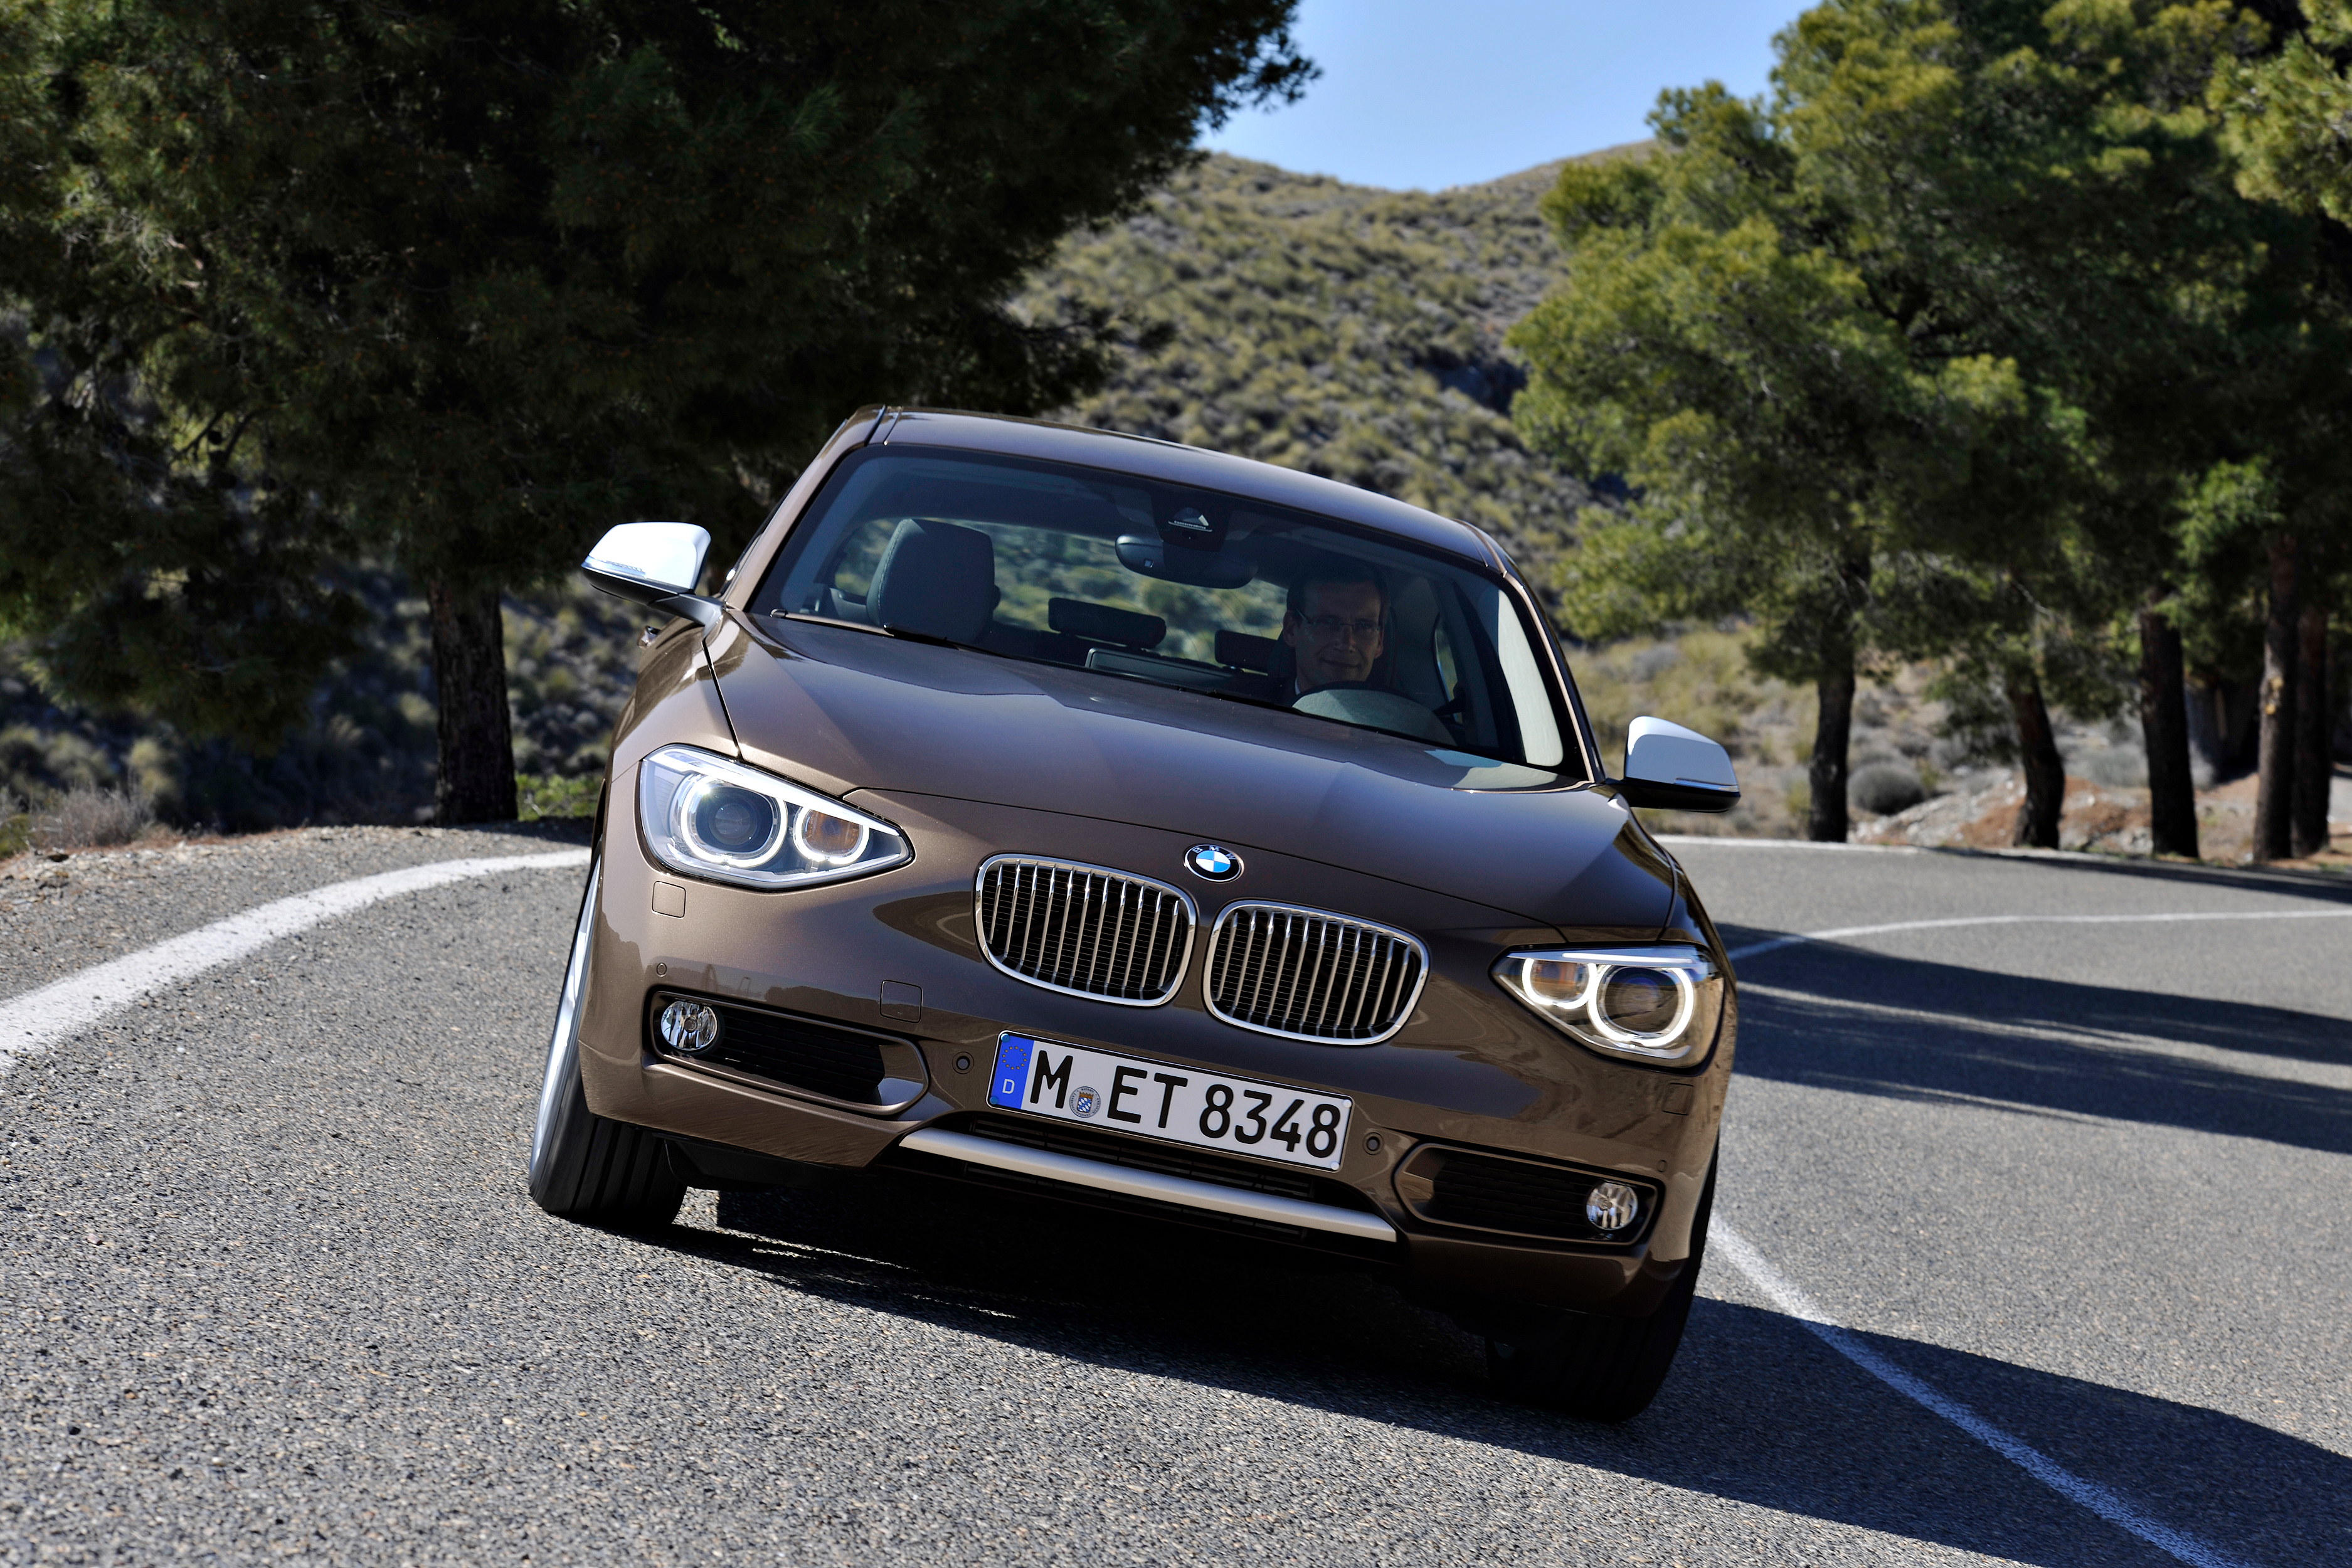 bmw 114i debuts with 3 door bmw 1 series hatch body paul tan image 106064. Black Bedroom Furniture Sets. Home Design Ideas